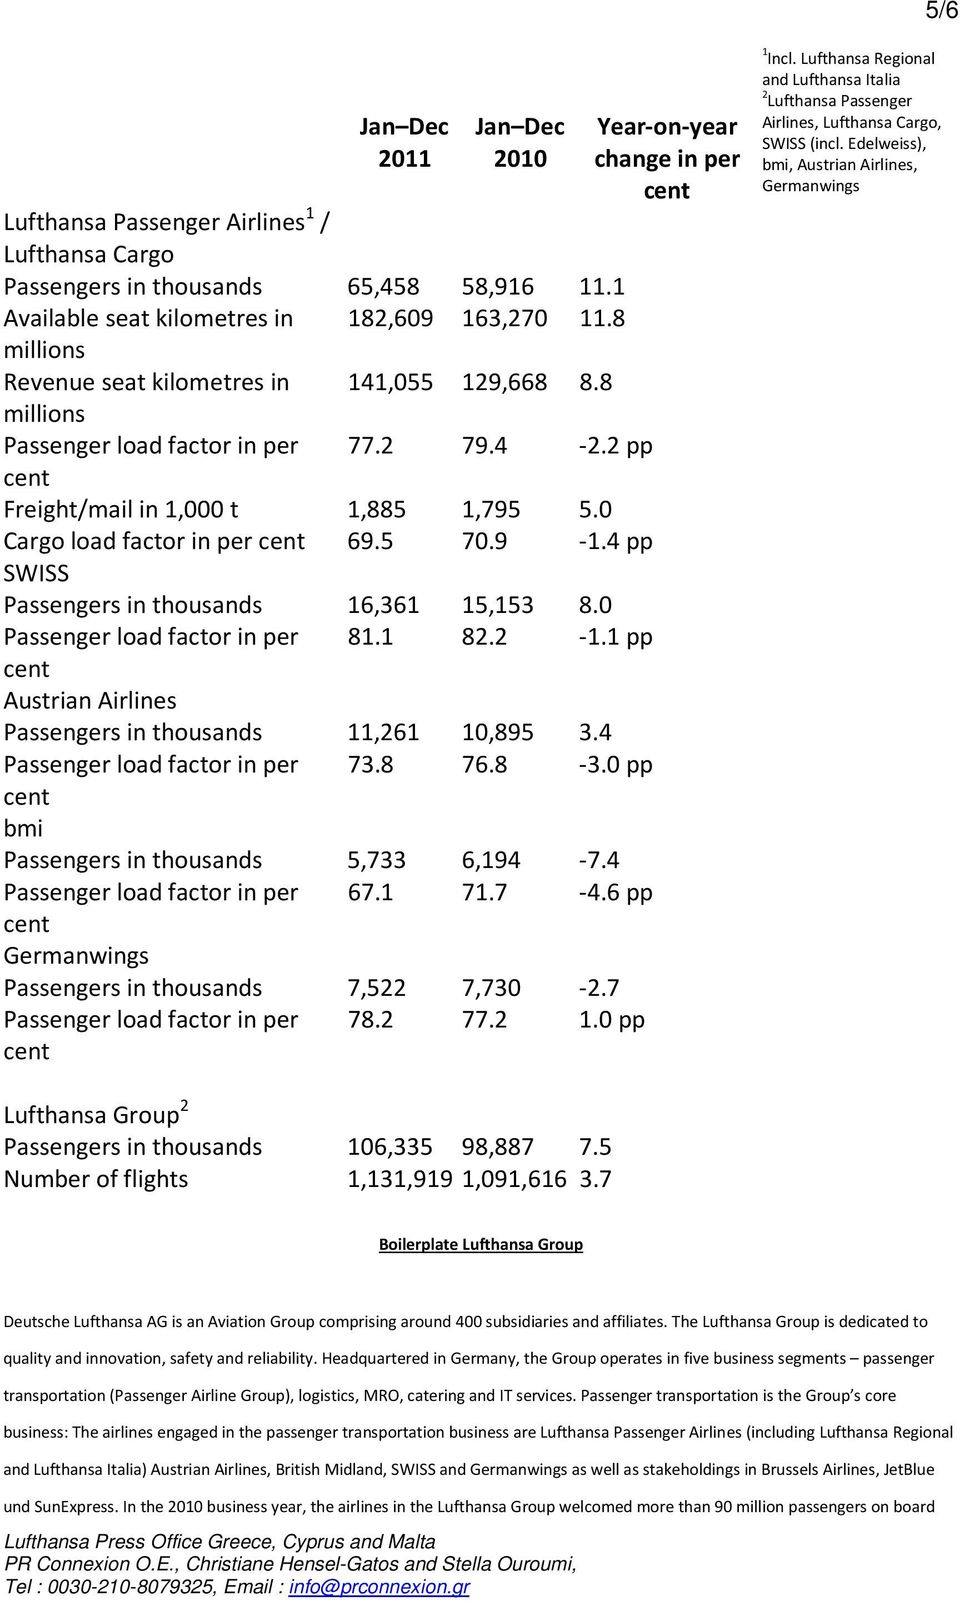 4 pp SWISS Passengers in thousands 16,361 15,153 8.0 Passenger load factor in per 81.1 82.2-1.1 pp Austrian Airlines Passengers in thousands 11,261 10,895 3.4 Passenger load factor in per 73.8 76.8-3.